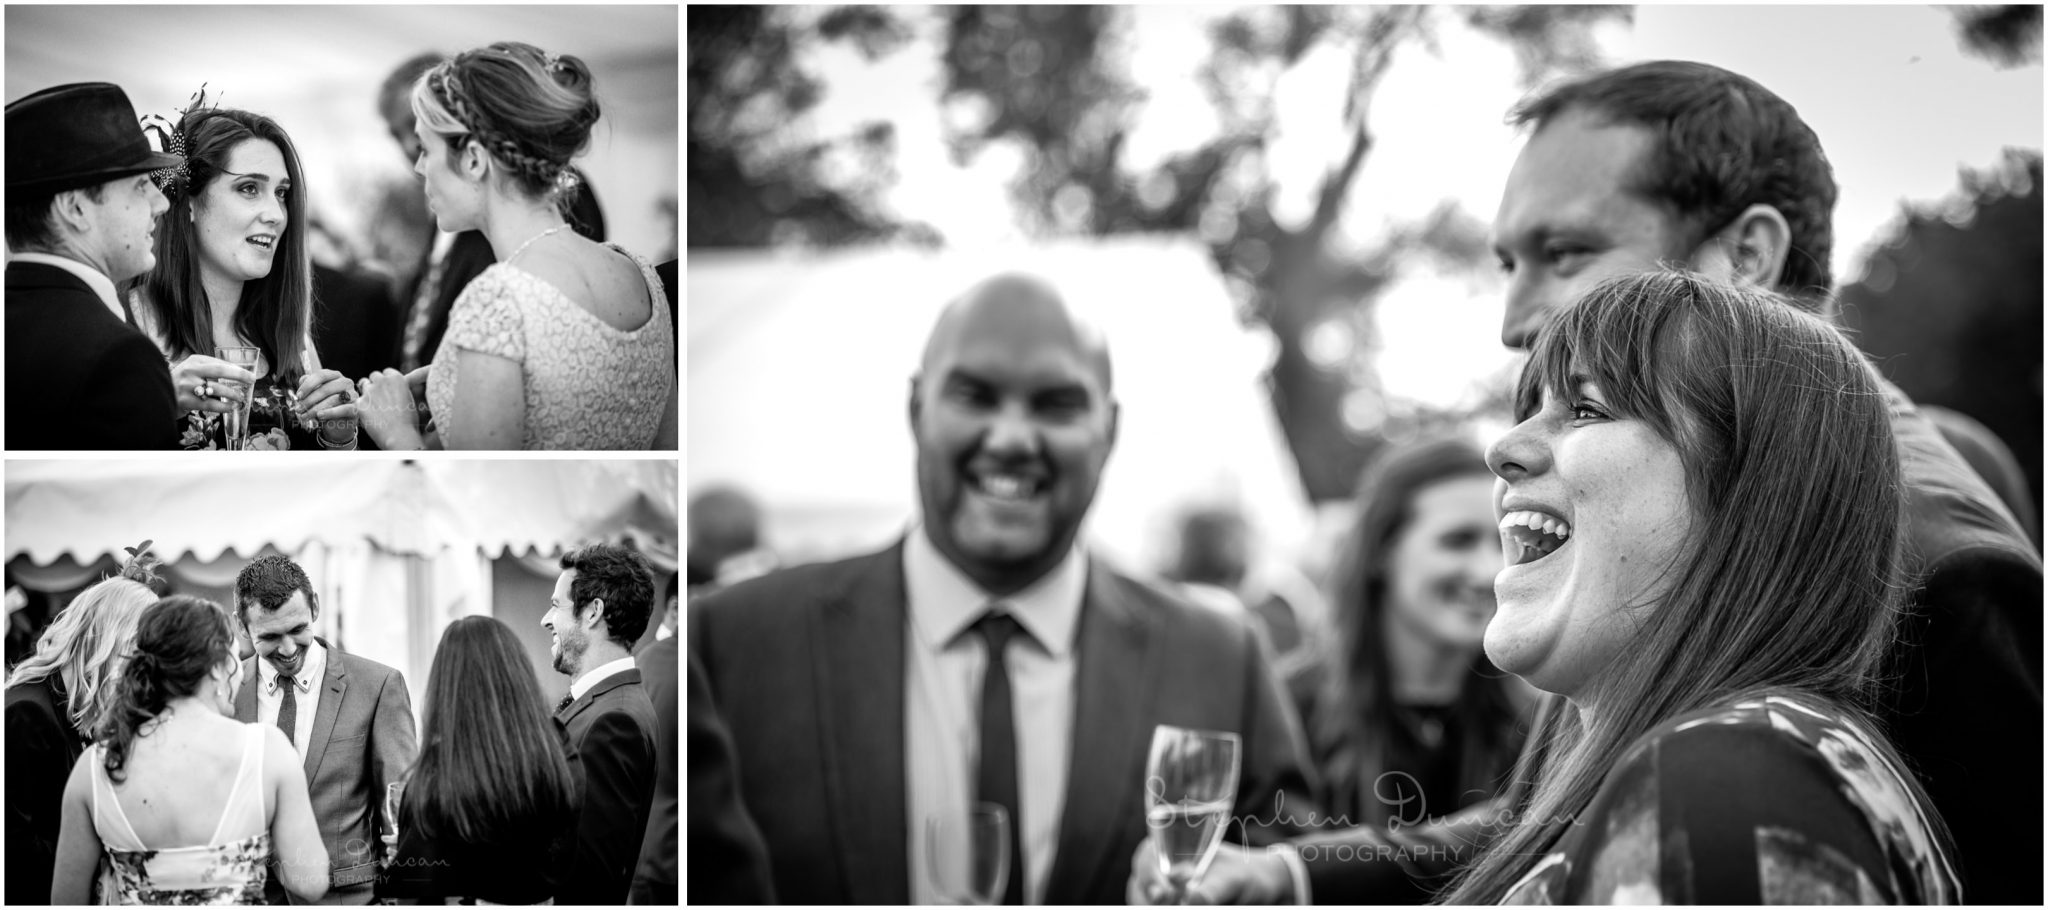 Lymington wedding photography candid photos of guests